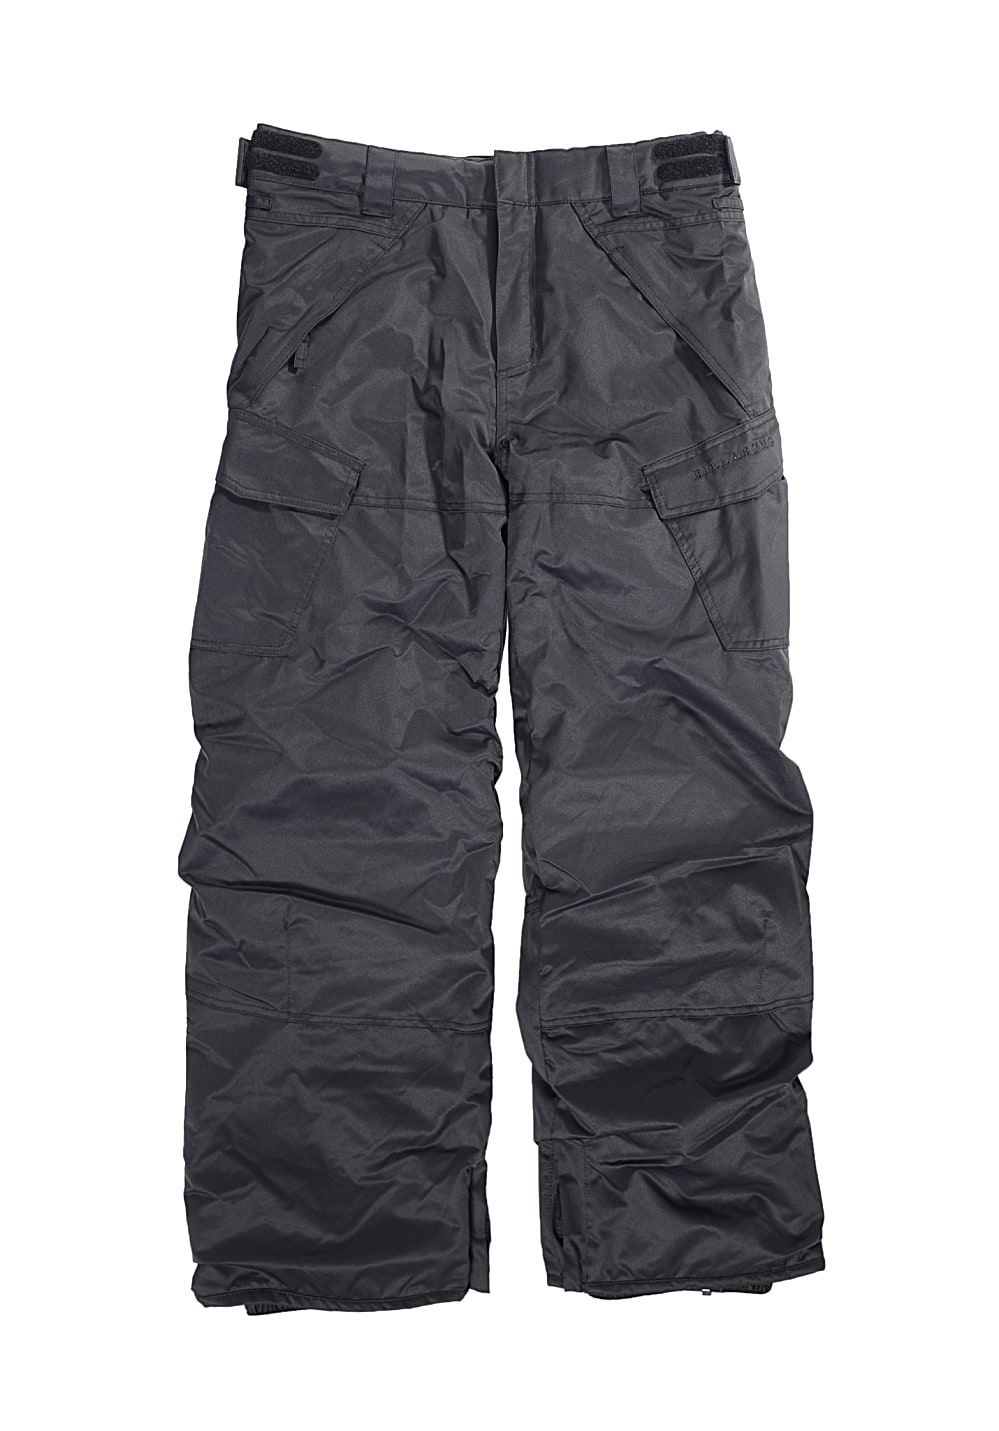 Boysregenwinter - BILLABONG Grom Boys Snowboardhose für Jungs Schwarz - Onlineshop Planet Sports